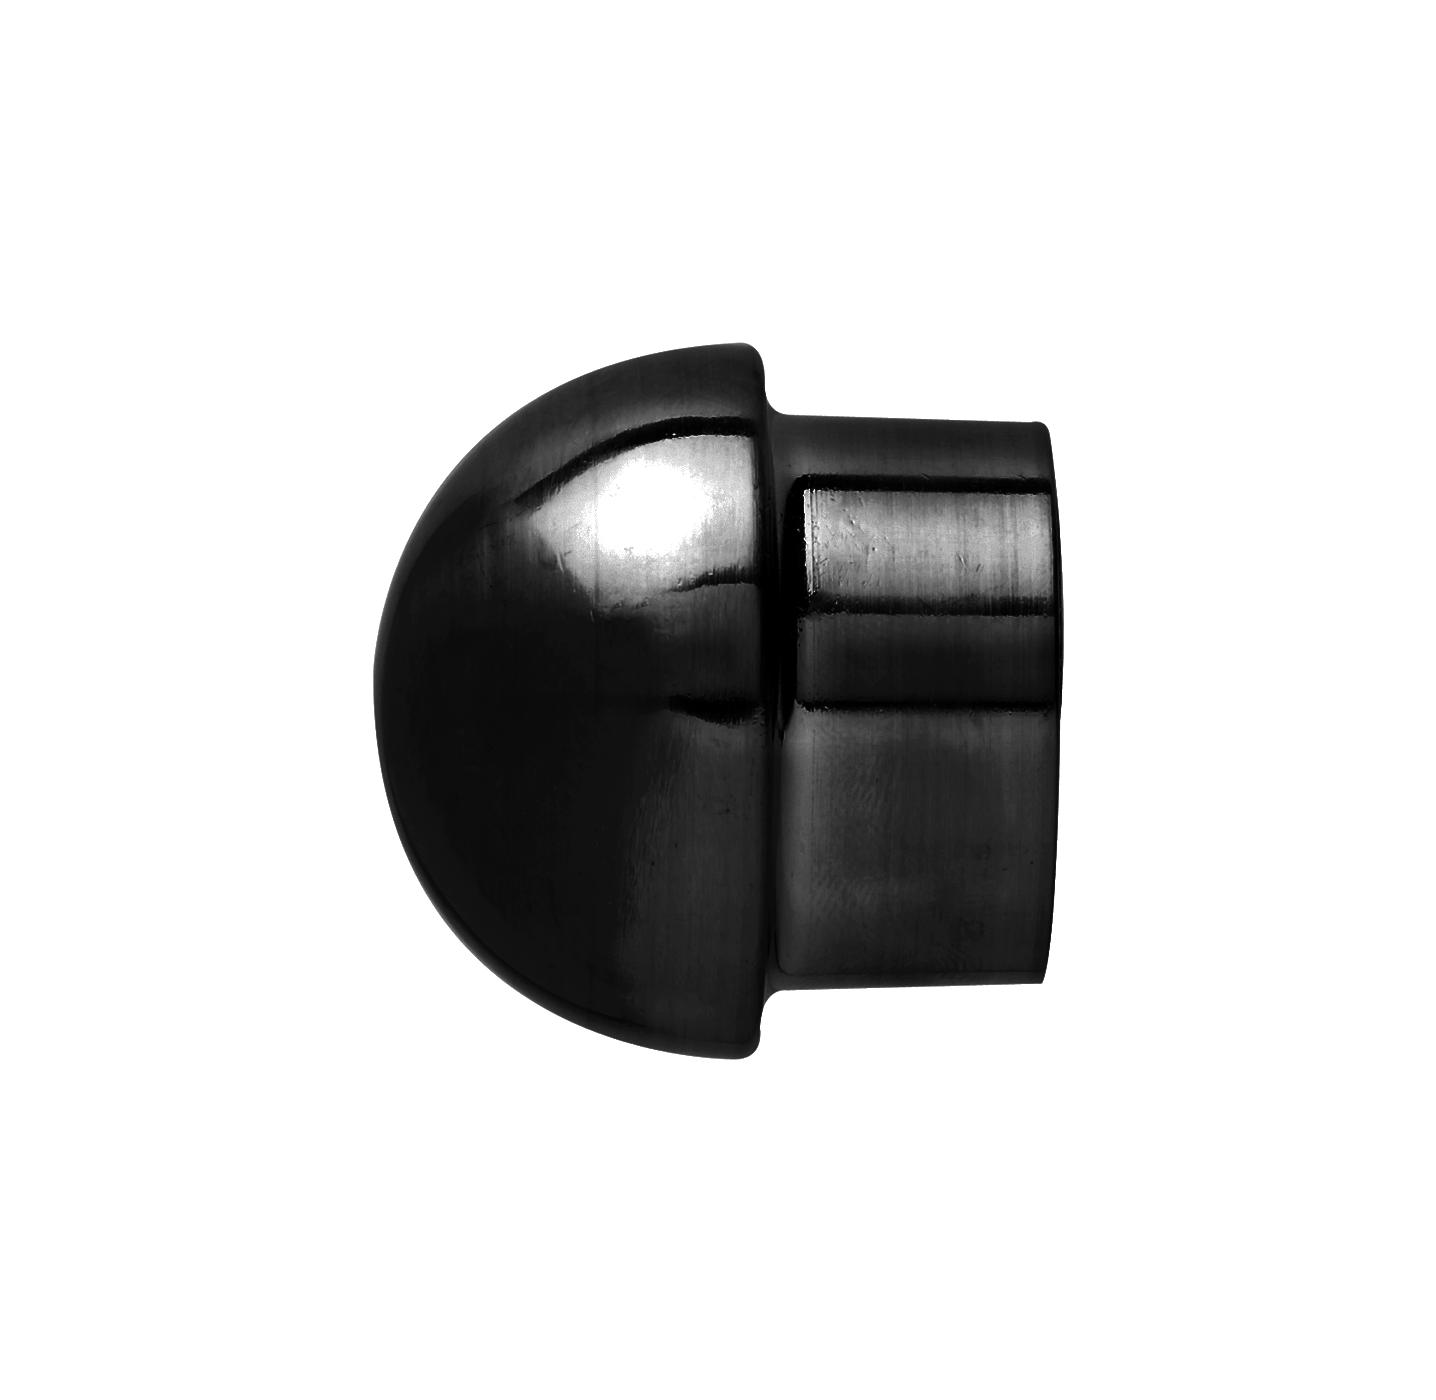 25 mm Steel Collar End Dome Onyx